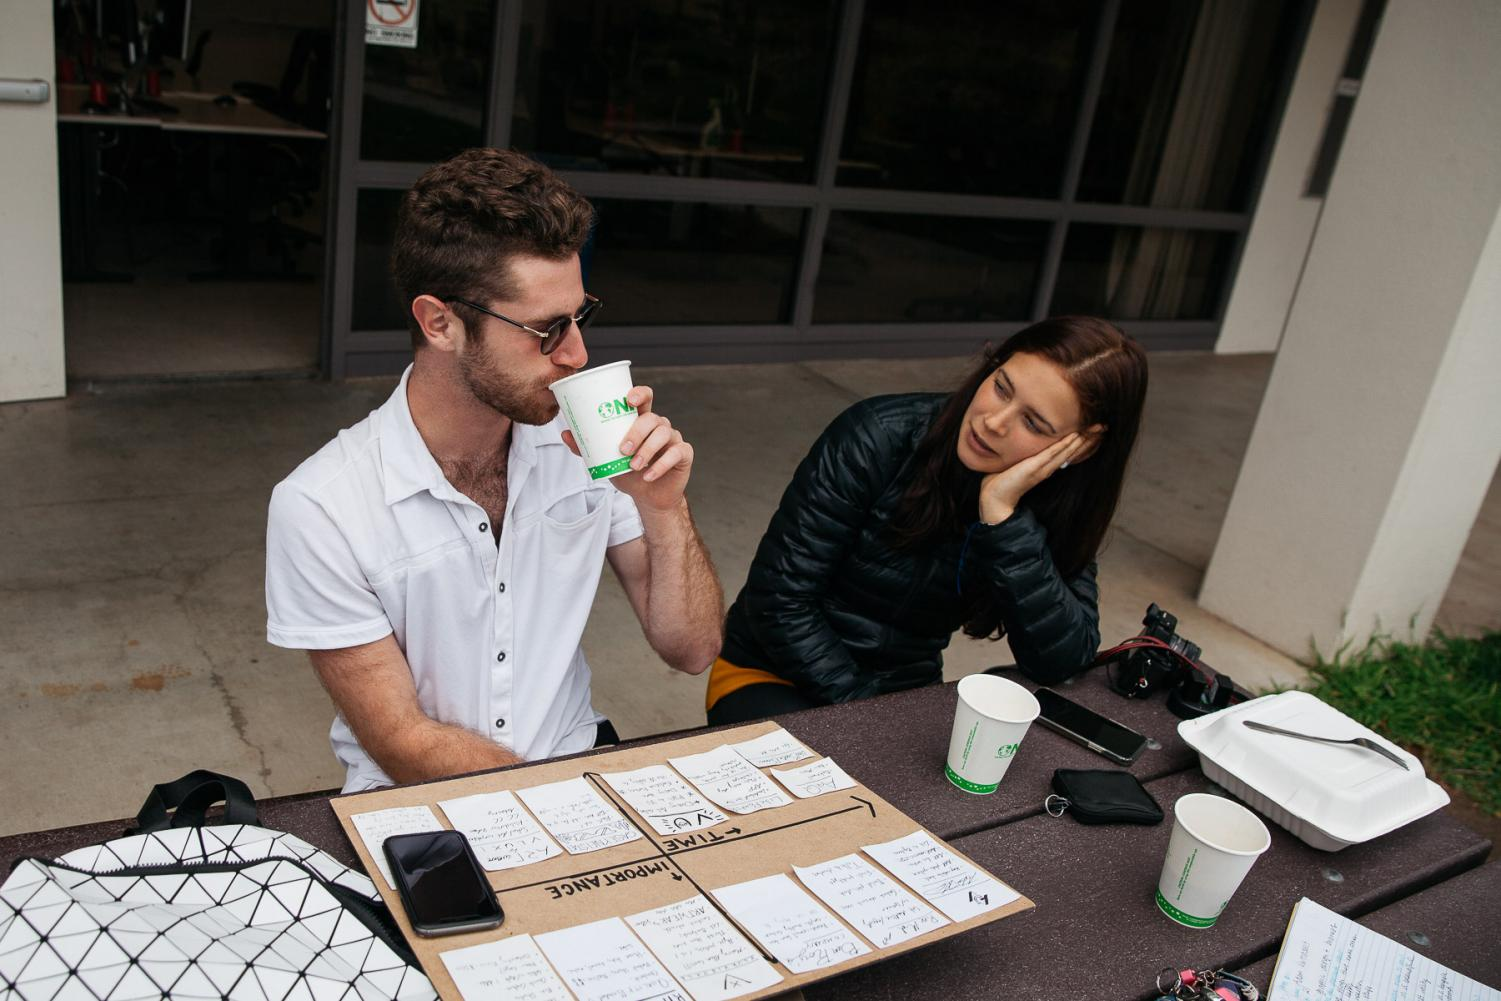 Adam Verhasselt and Gaia Menni discuss future goals and ideas over coffee during the Creative Club meeting on Friday, March 1, 2019 in front of the Occupational Education building at City College in Santa Barbara, Calif. The club meets every Friday at noon.